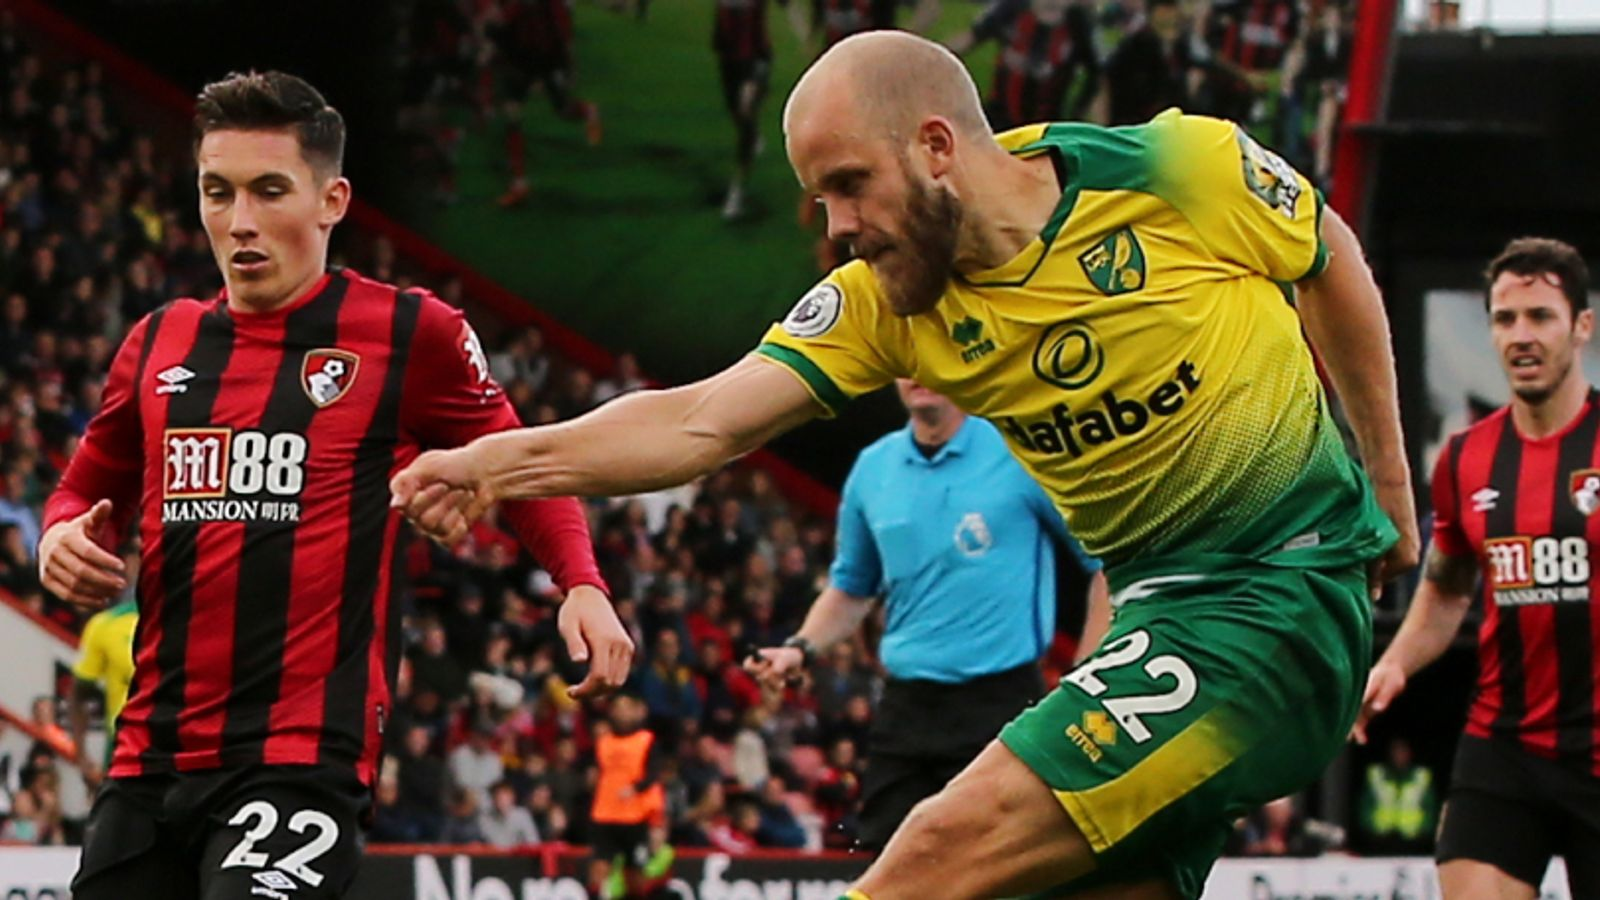 Bournemouth 0-0 Norwich: Canaries pick up first away point in stalemate